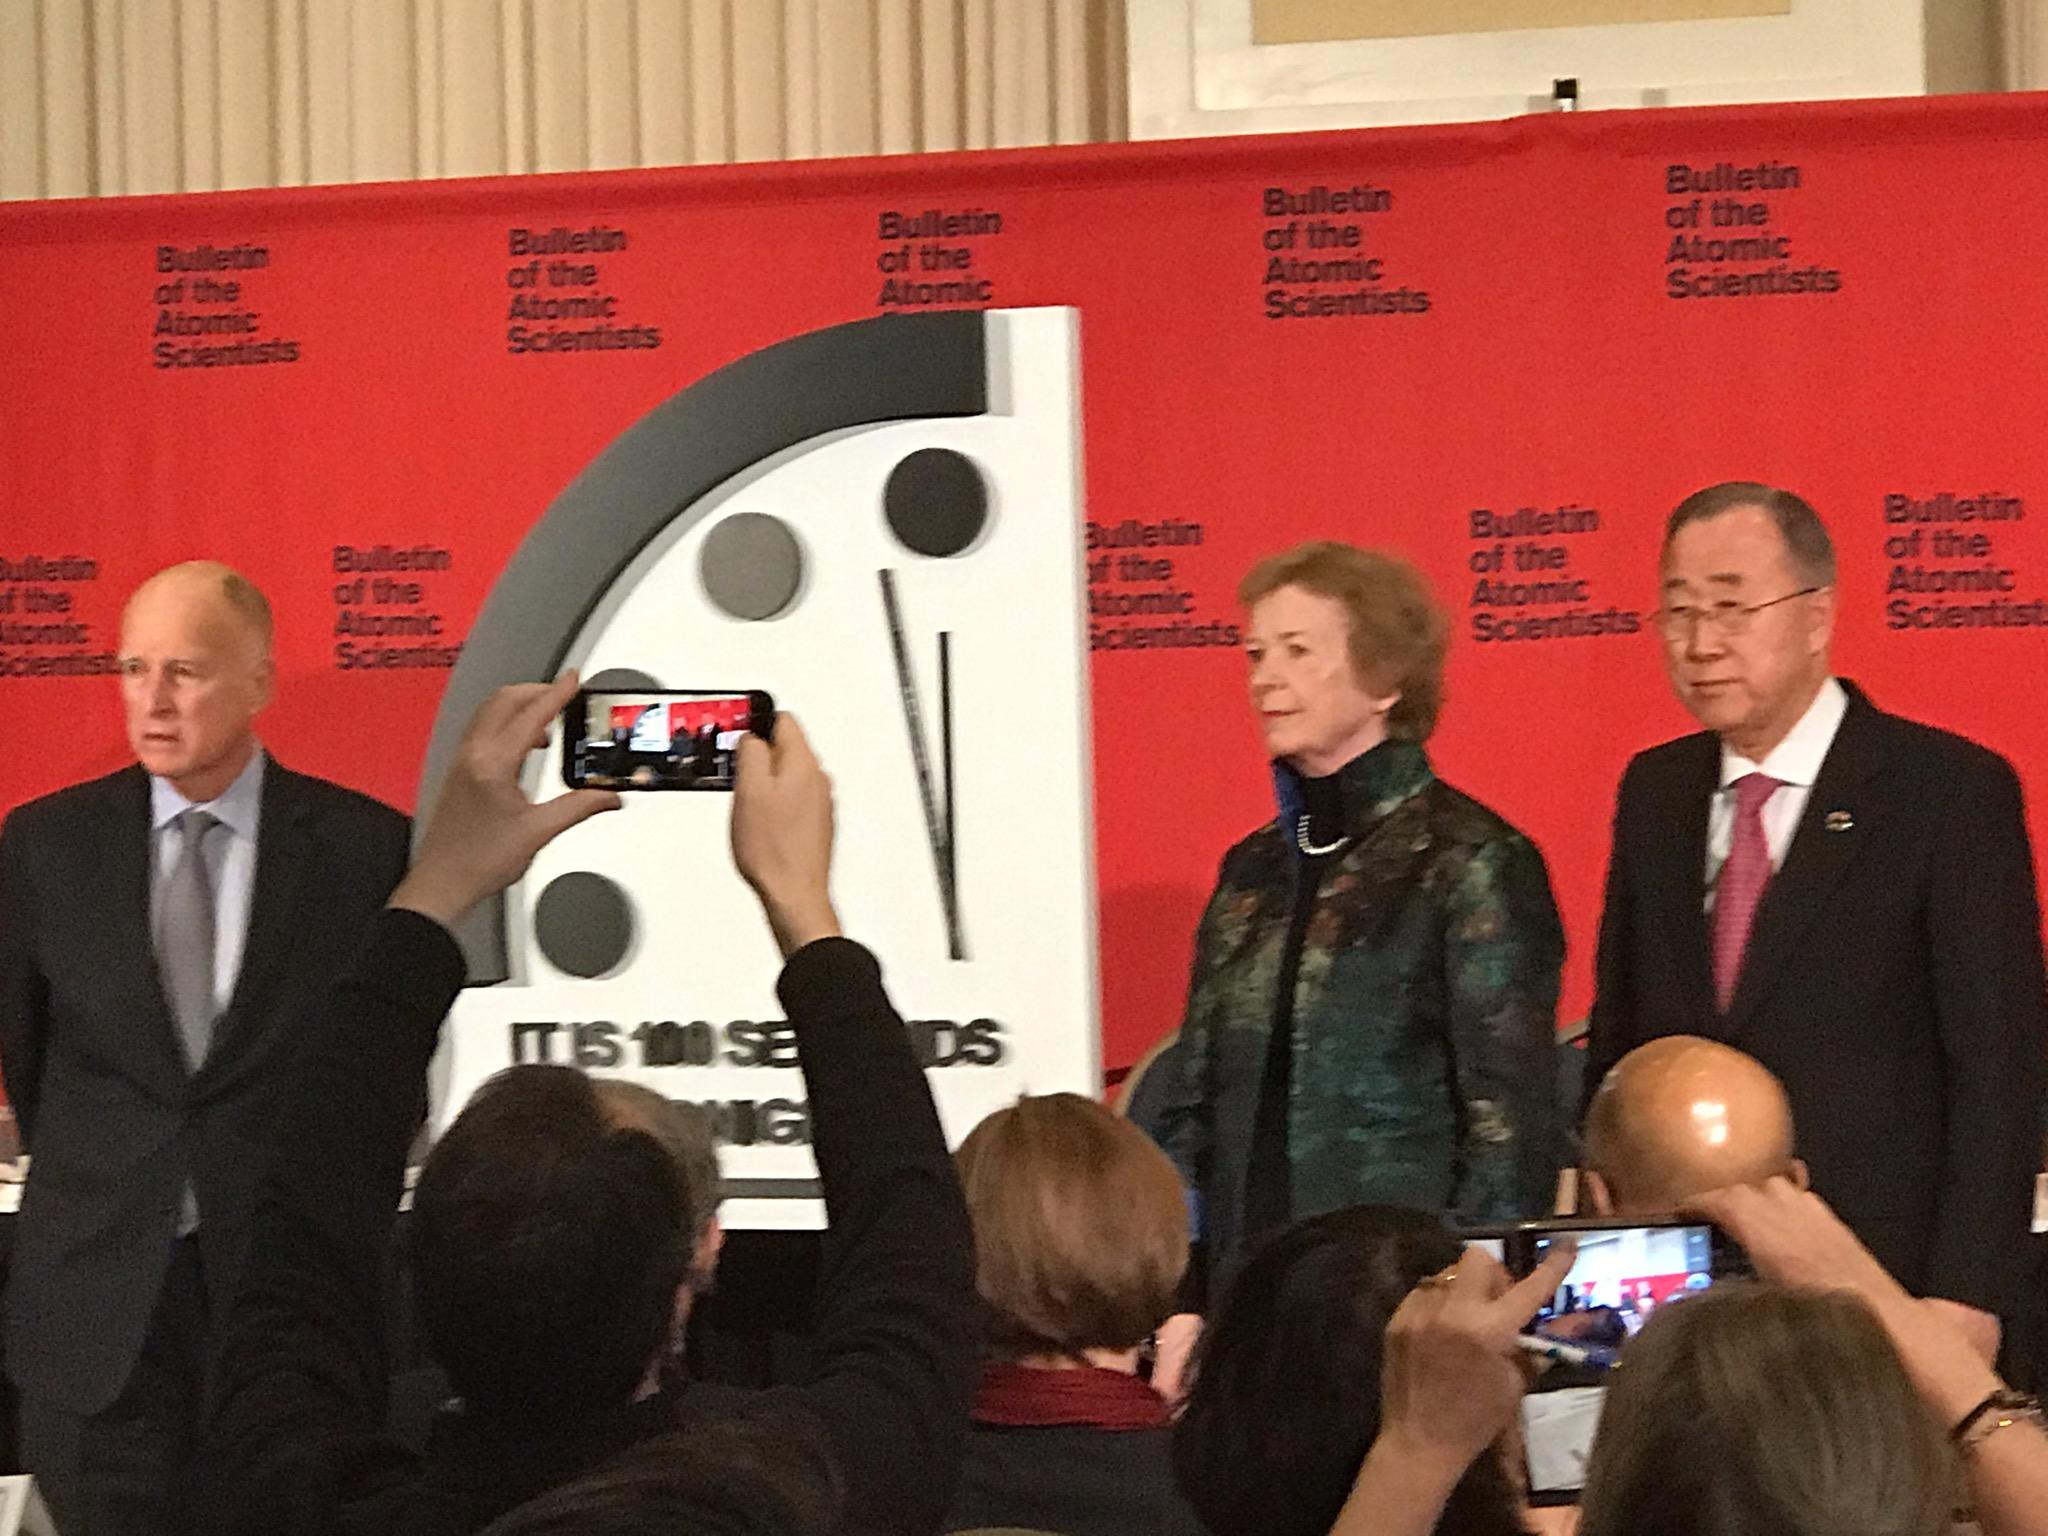 Doomsday Clock Slogans Pick Your Favorite Bulletin Of The Atomic Scientists